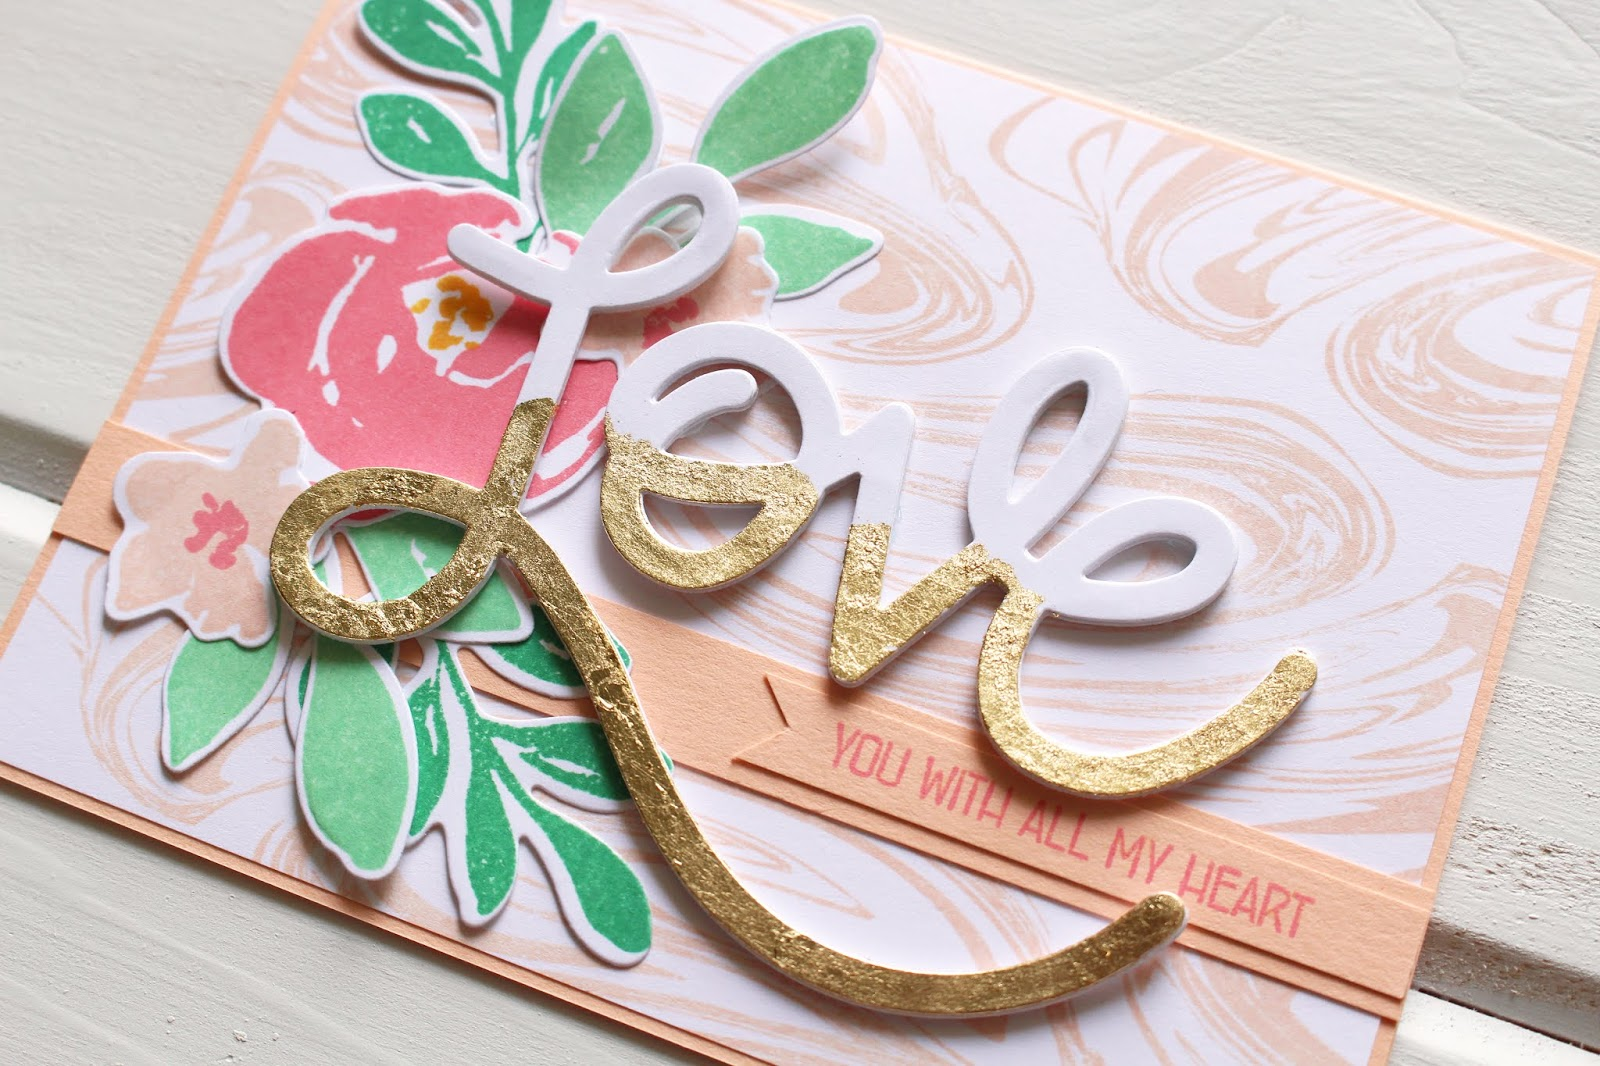 Introducing Love Word Die And With All My Heart Stamp Set